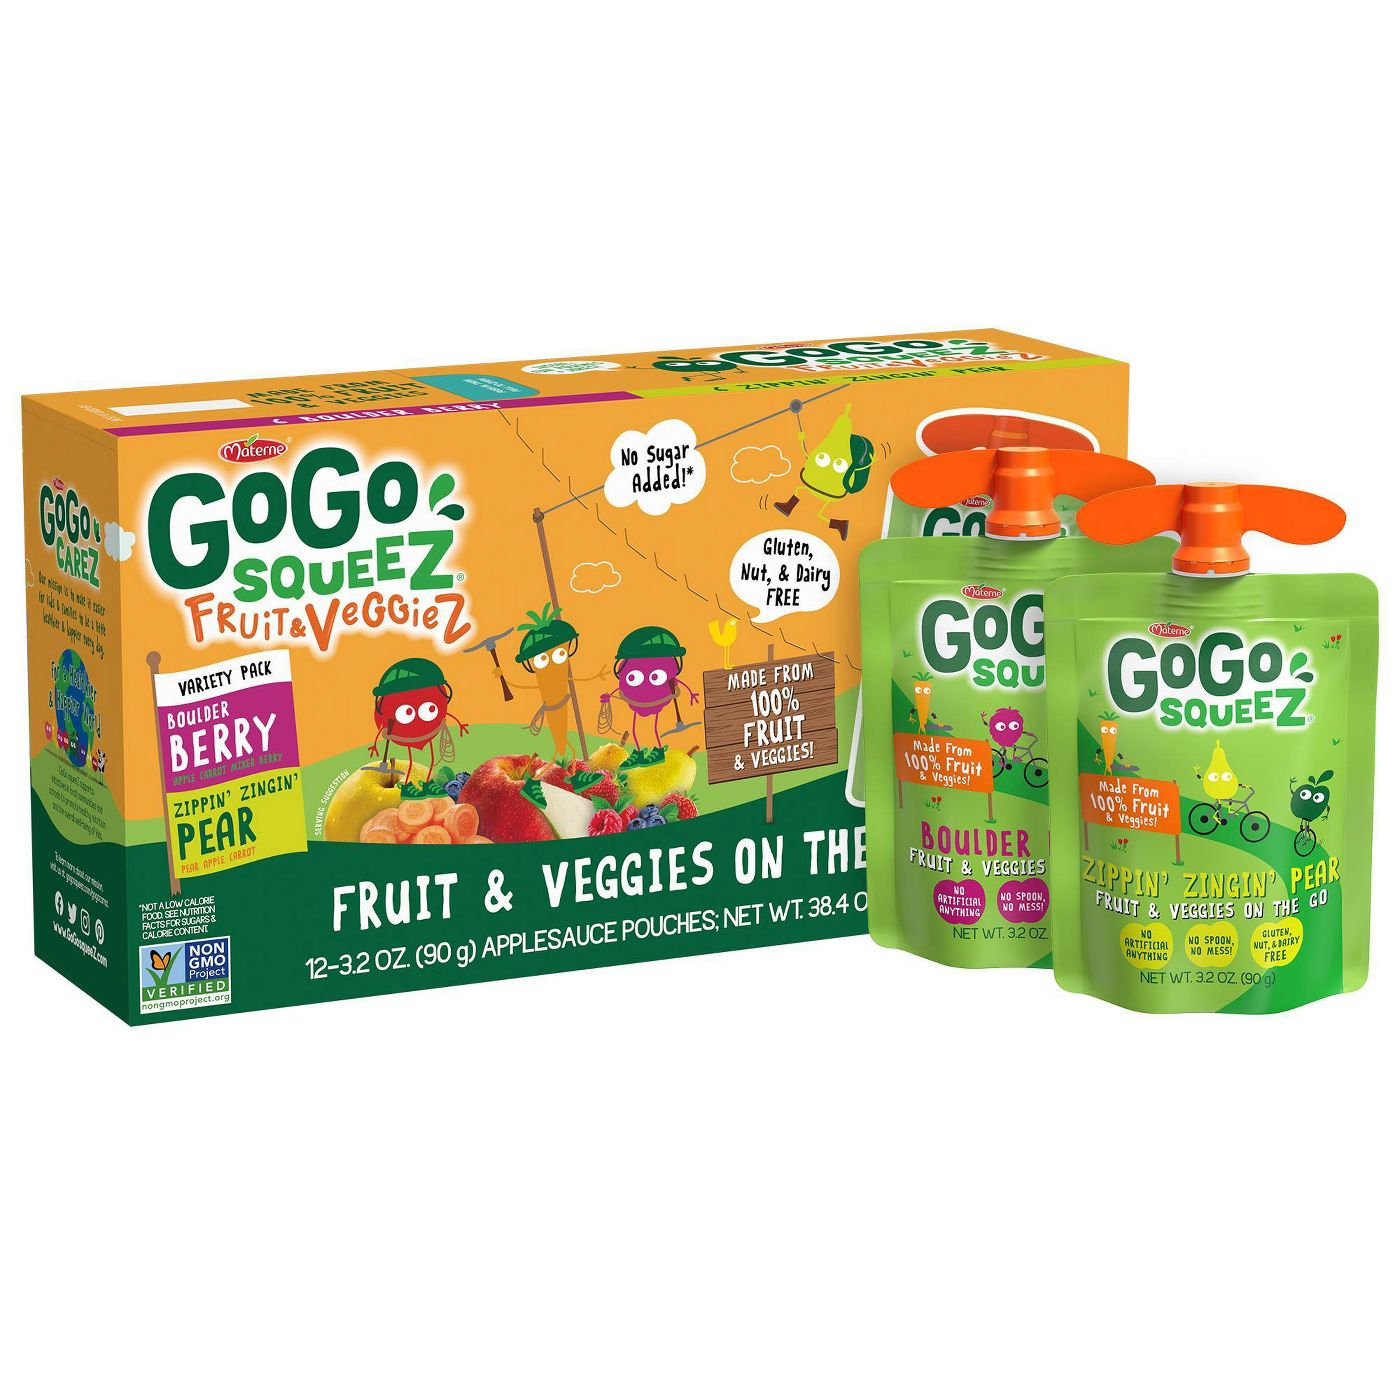 box of GoGo SqueeZ Variety Fruit and Veggies Applesauce On-The-Go Pouch with two pouches